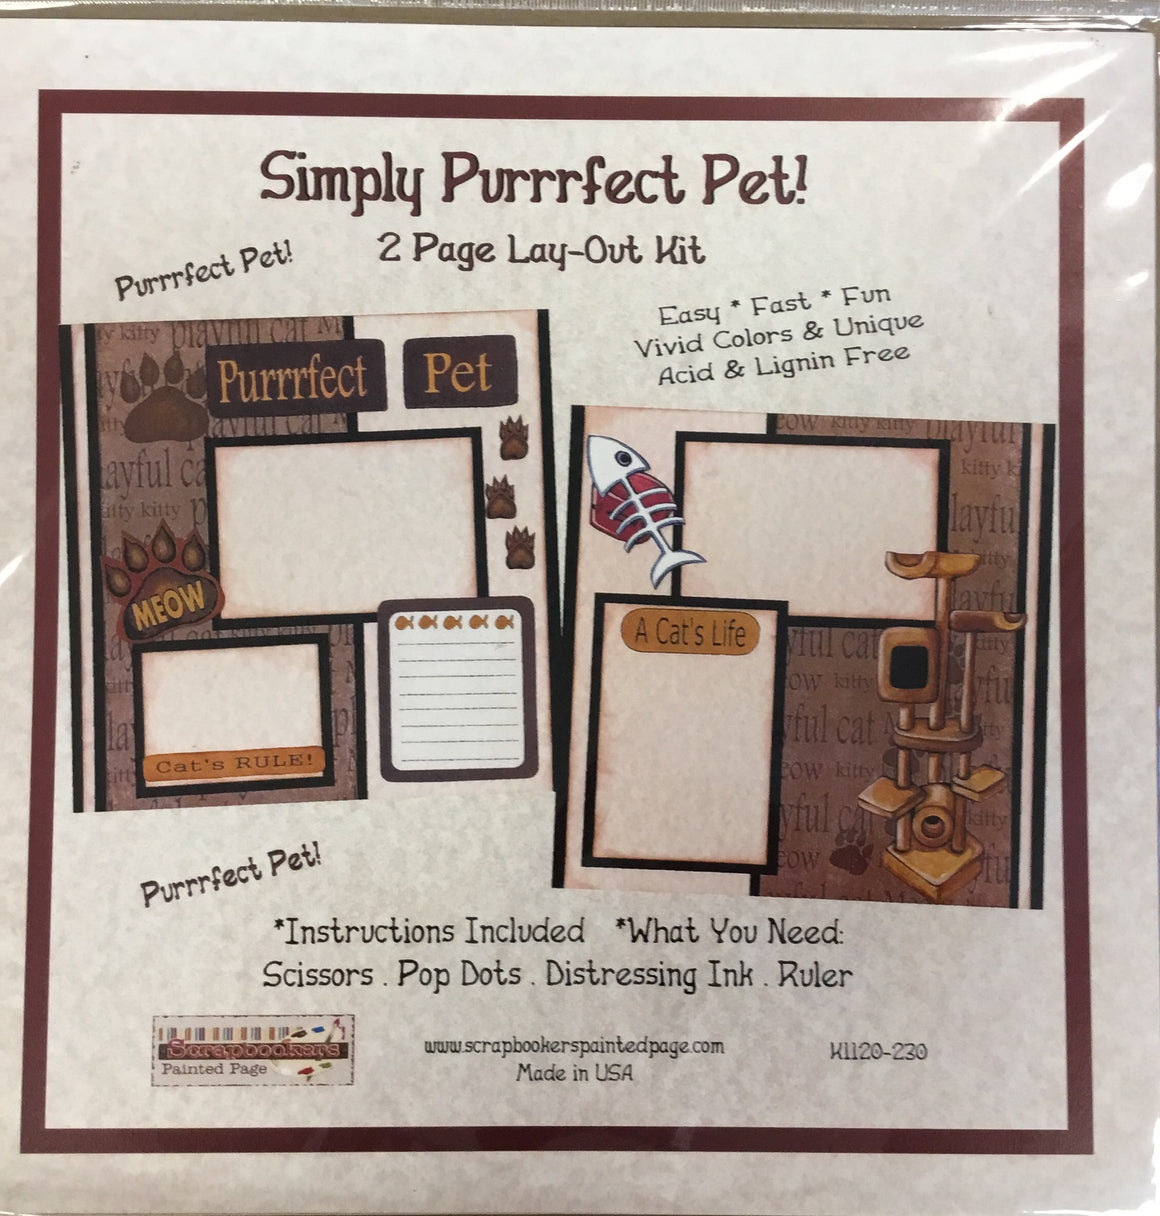 12x12 2 page layout kit Simply Purrrfect Pet